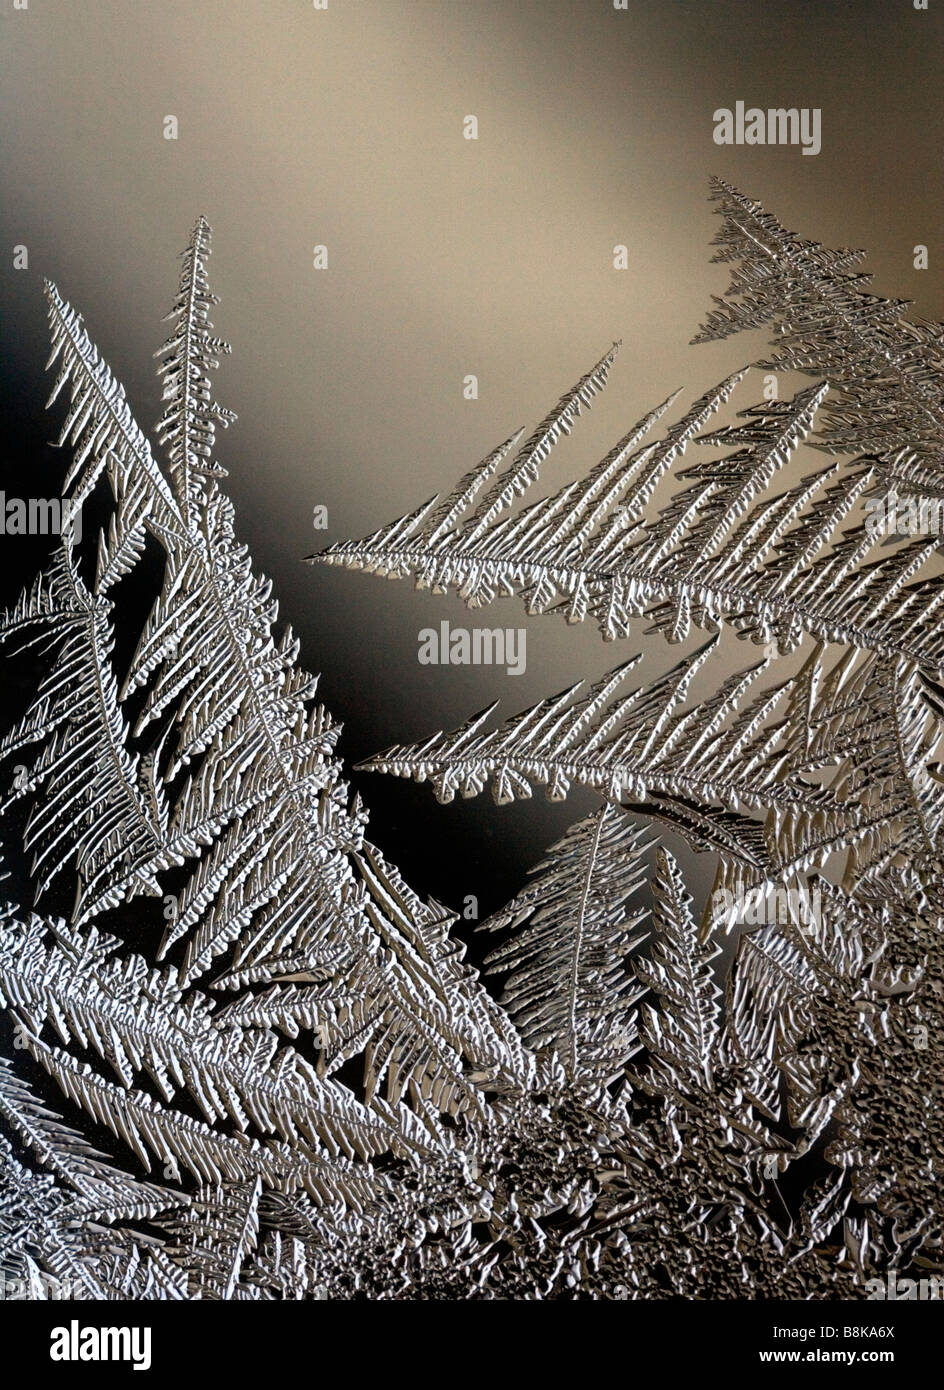 Frost forms on a frigid winter window. - Stock Image